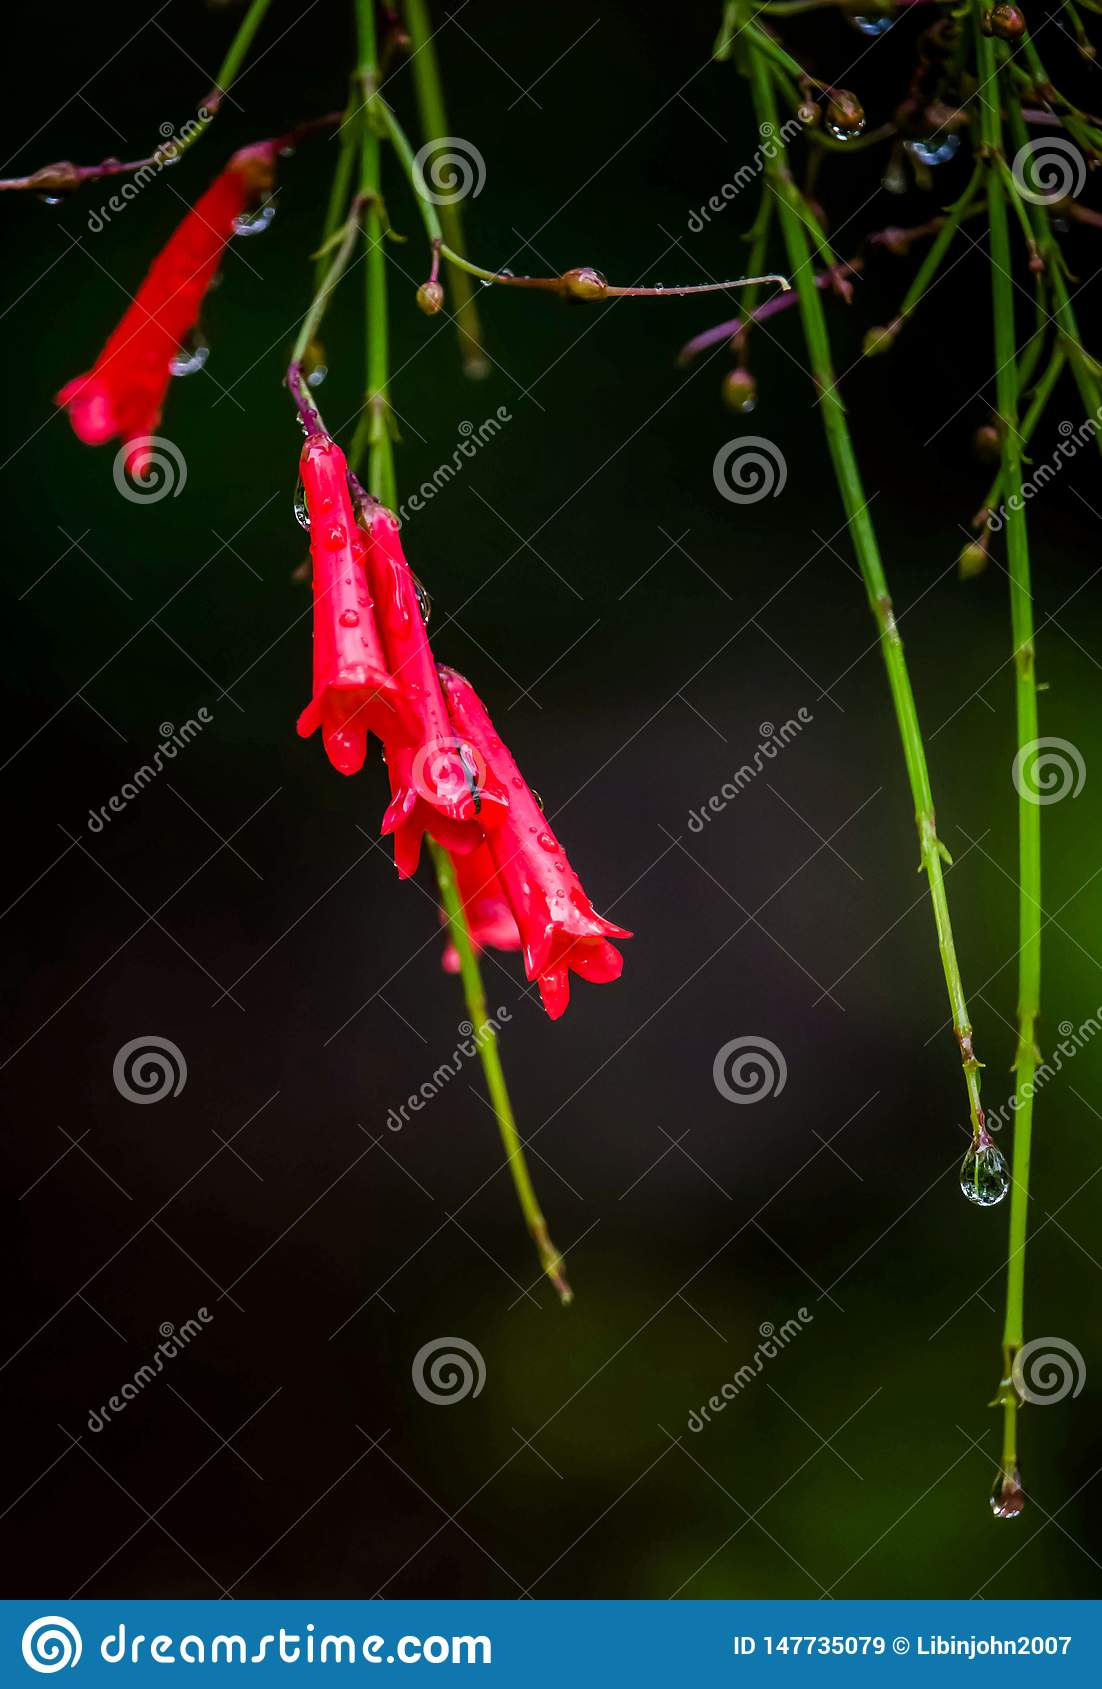 Russelia equisetiformis, commonly known as fountainbush, firecracker plant, coral plant, coral fountain, coralblow and fountain